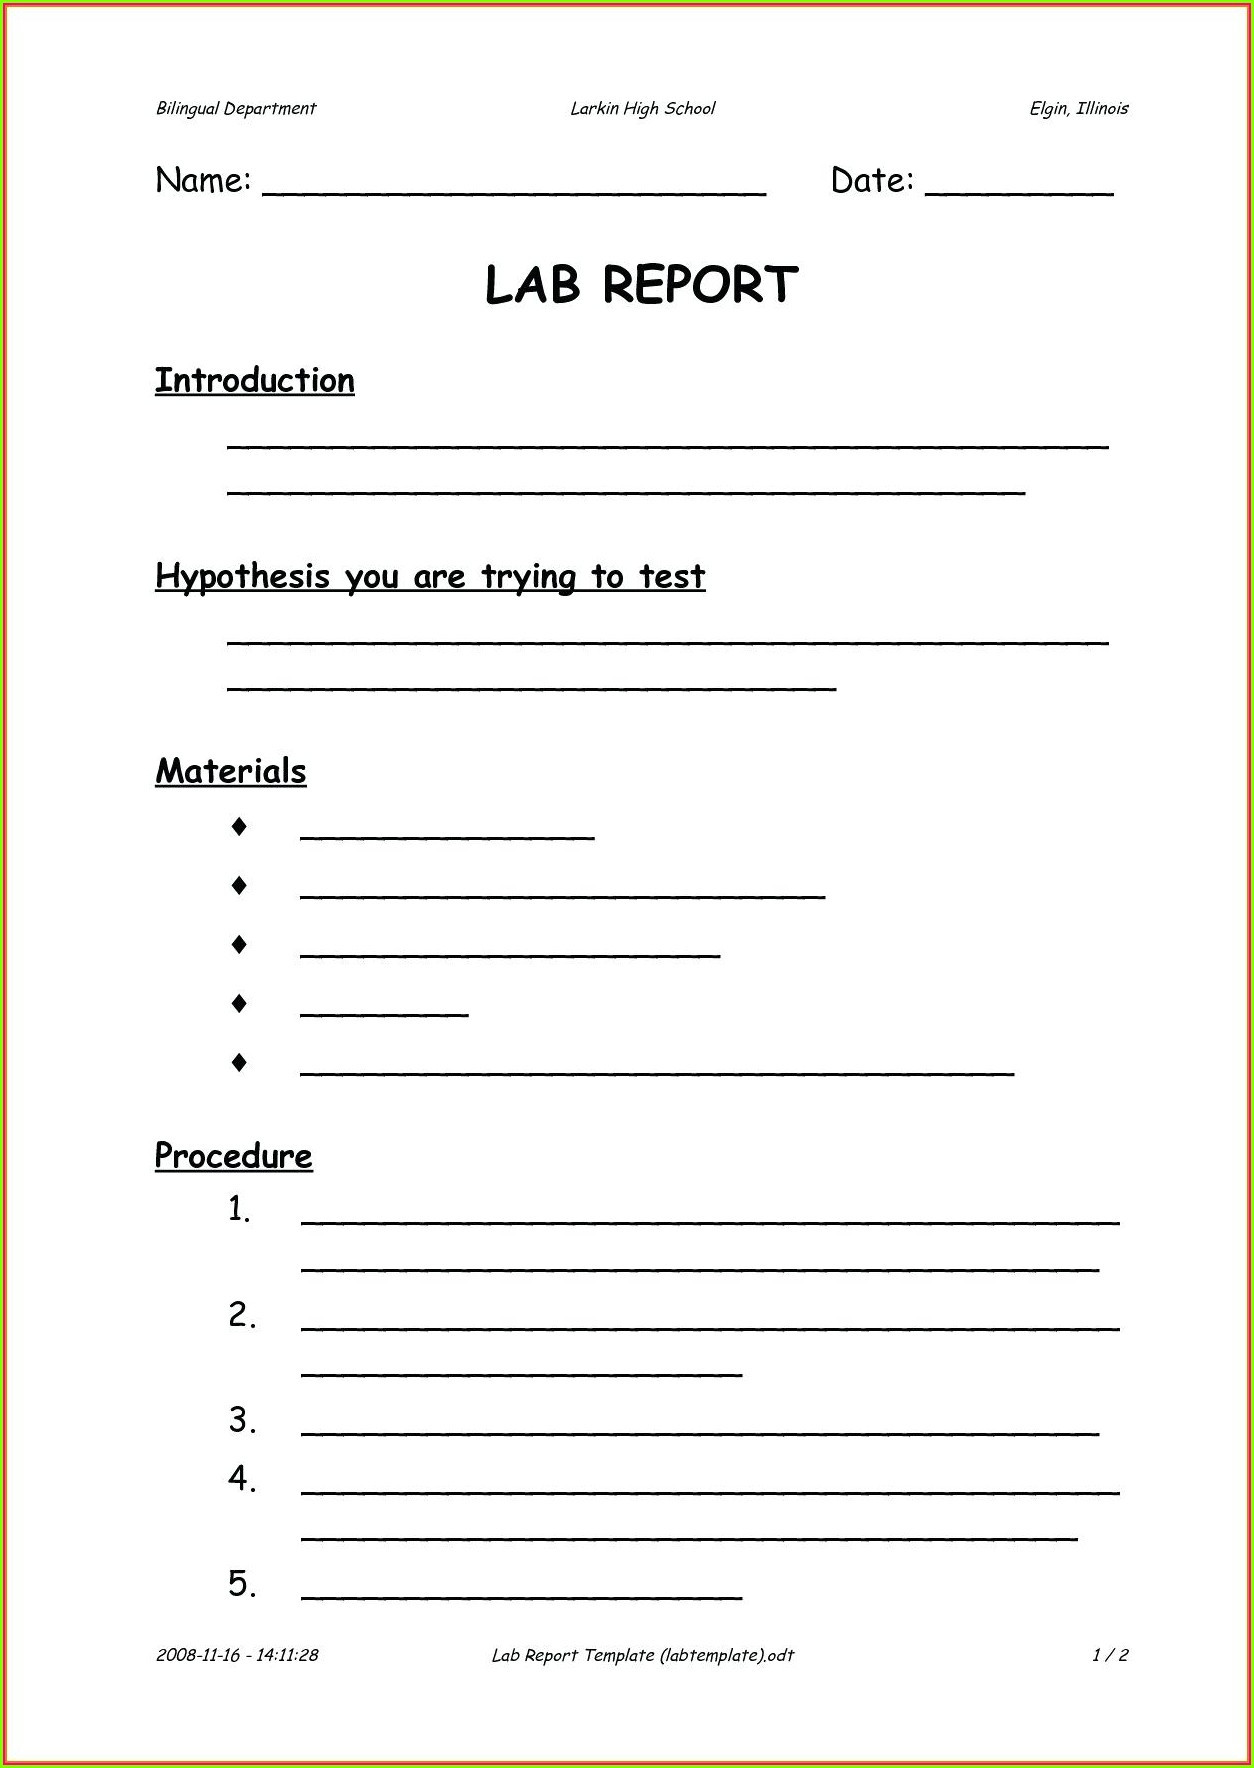 Scientific Method Worksheets High School High School Scientific Method Worksheet Printable Worksheets